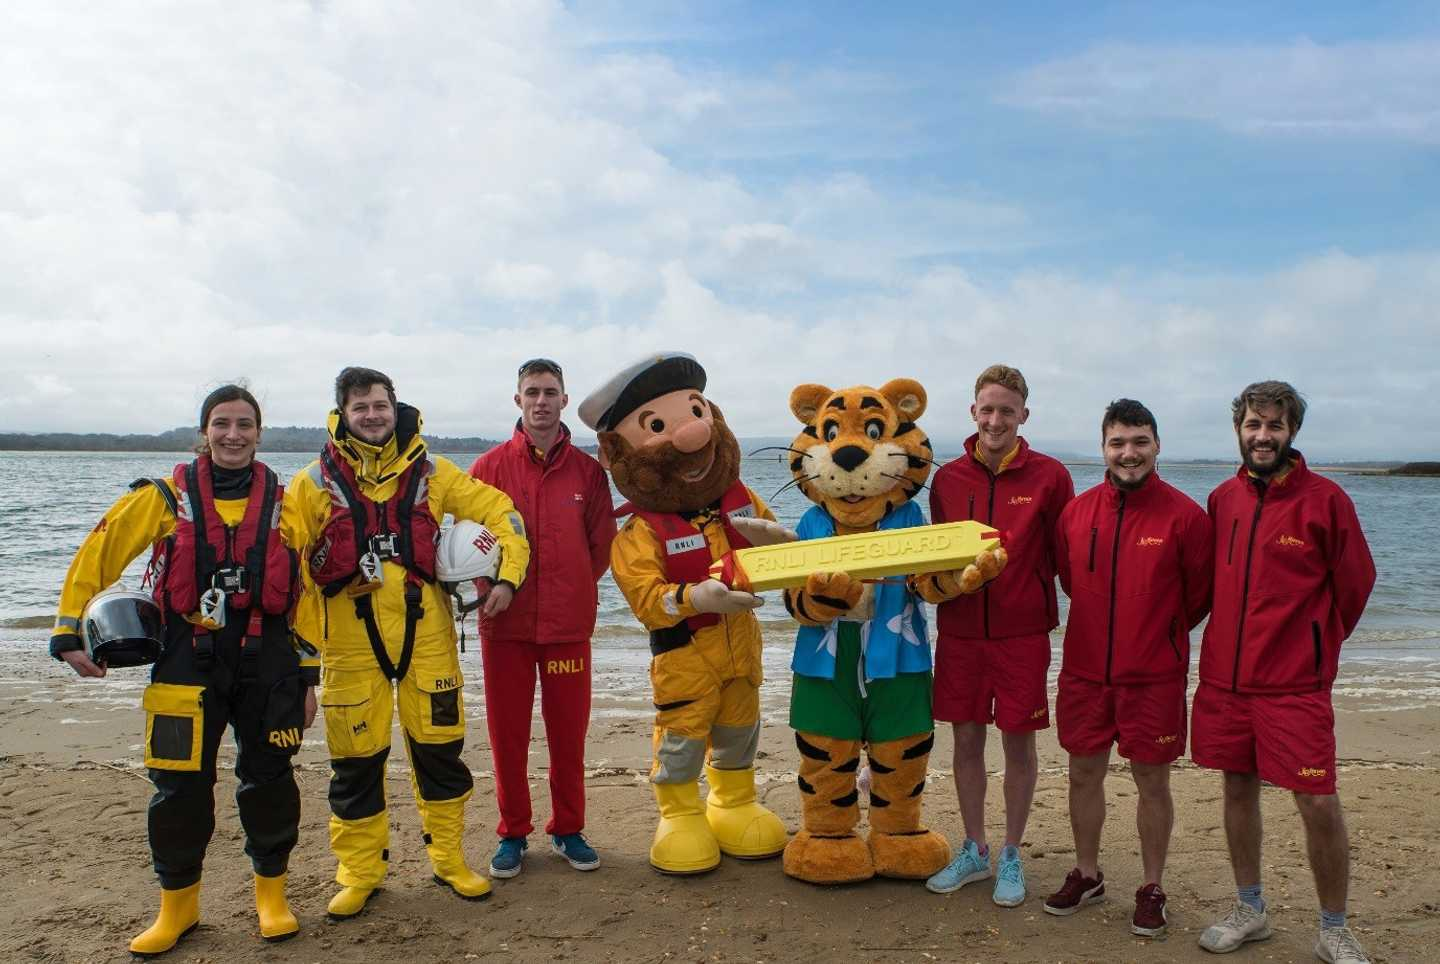 The RNLI on the beach with Rory